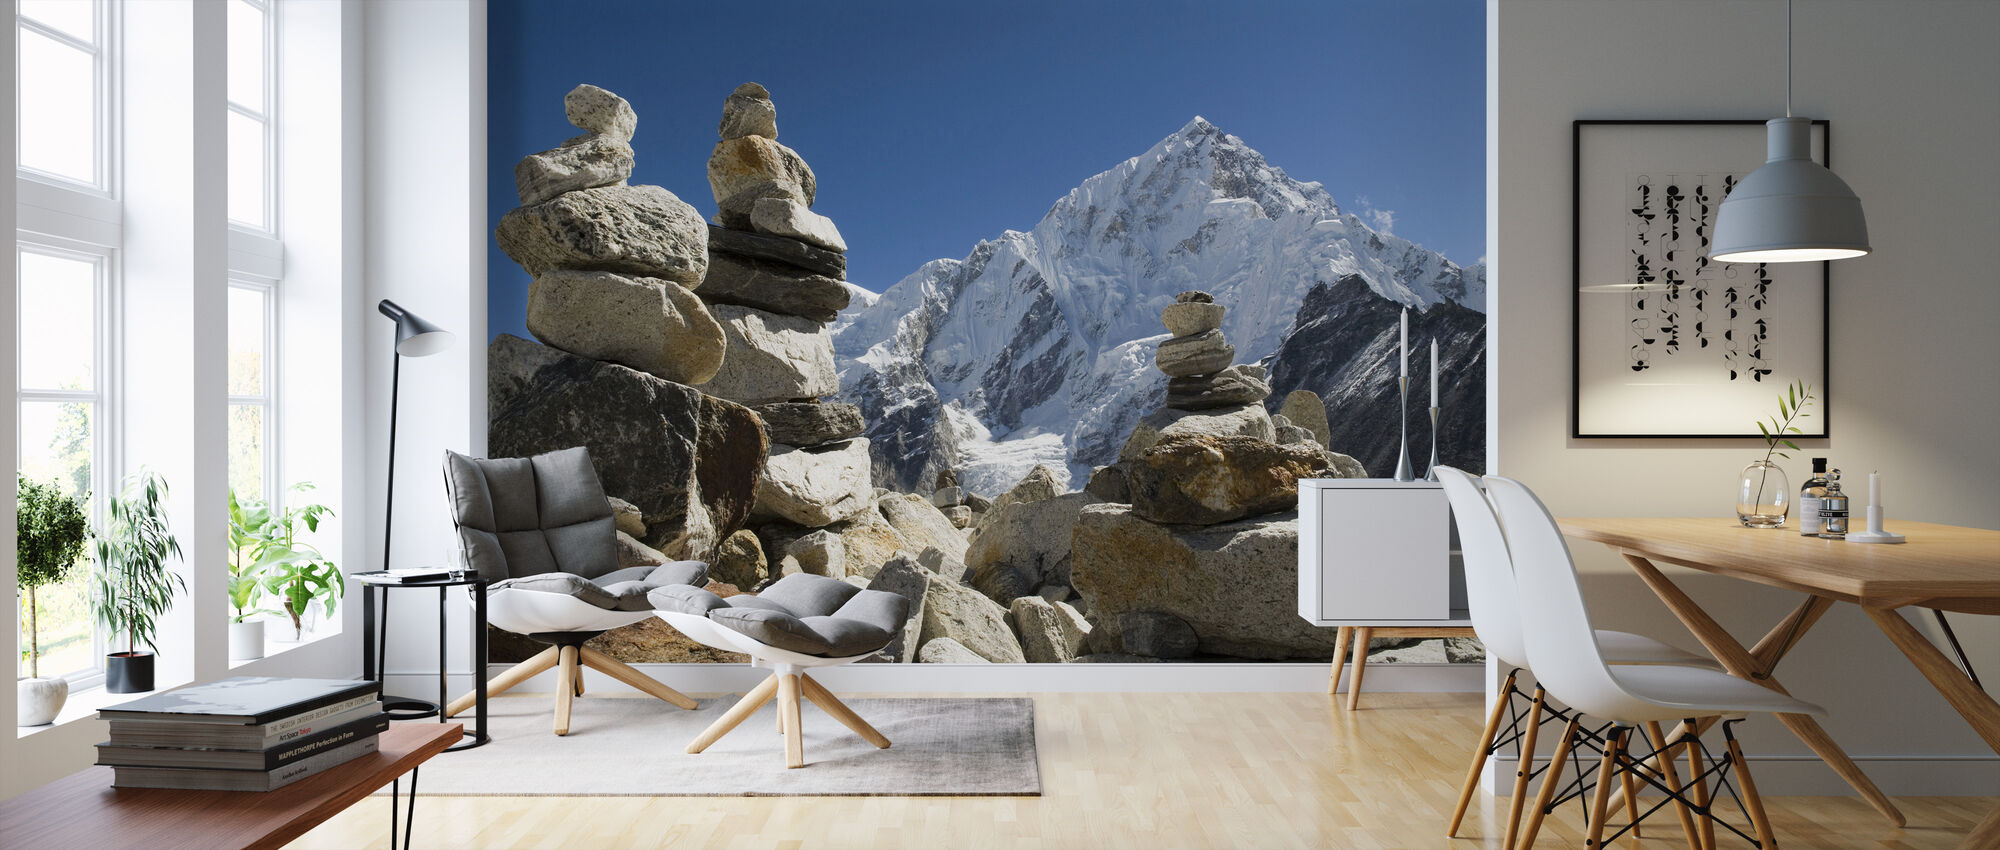 Rock Piles in the Himalayas - Wallpaper - Living Room